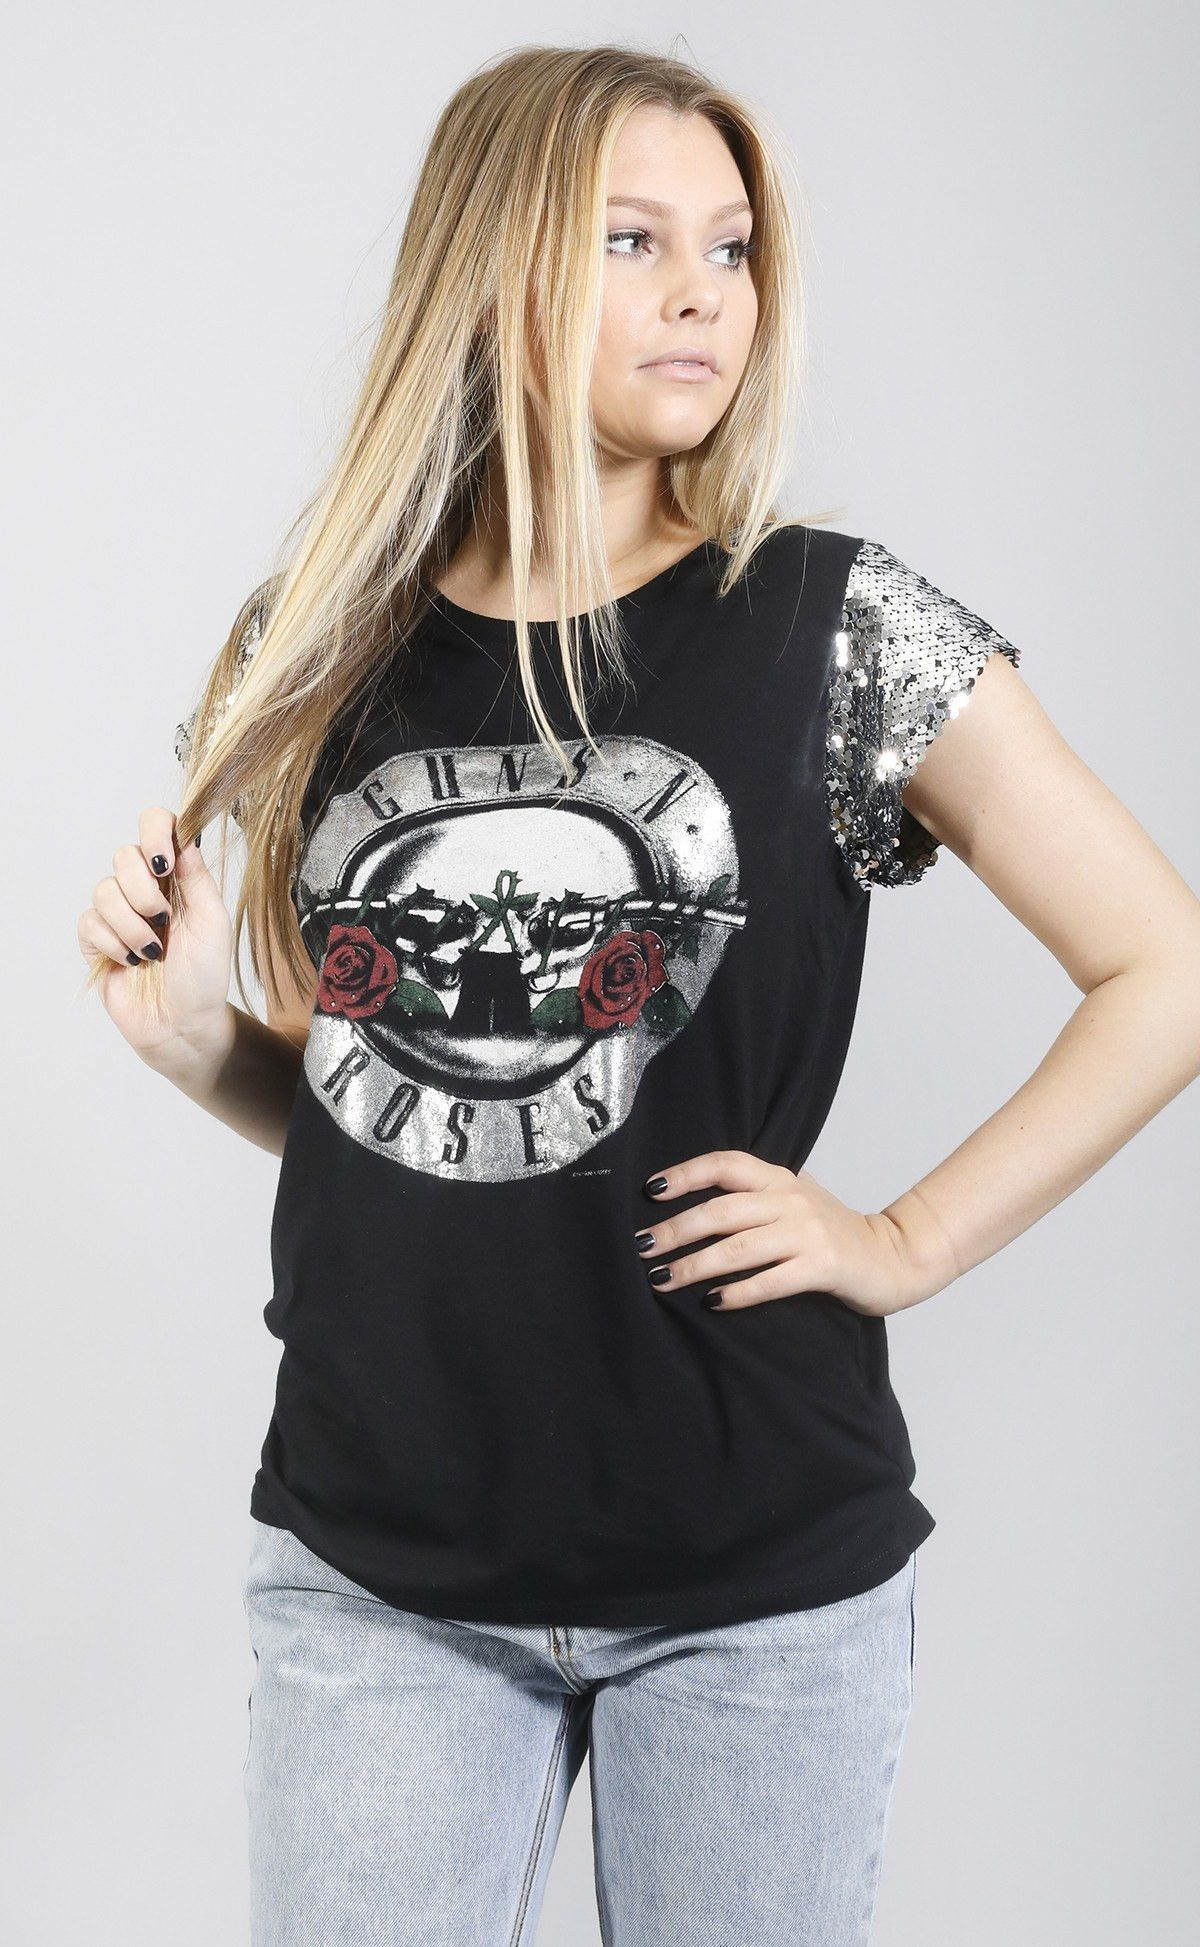 9318d1b7b daydreamer: guns 'n roses t shirt - silver sequin | Products ...